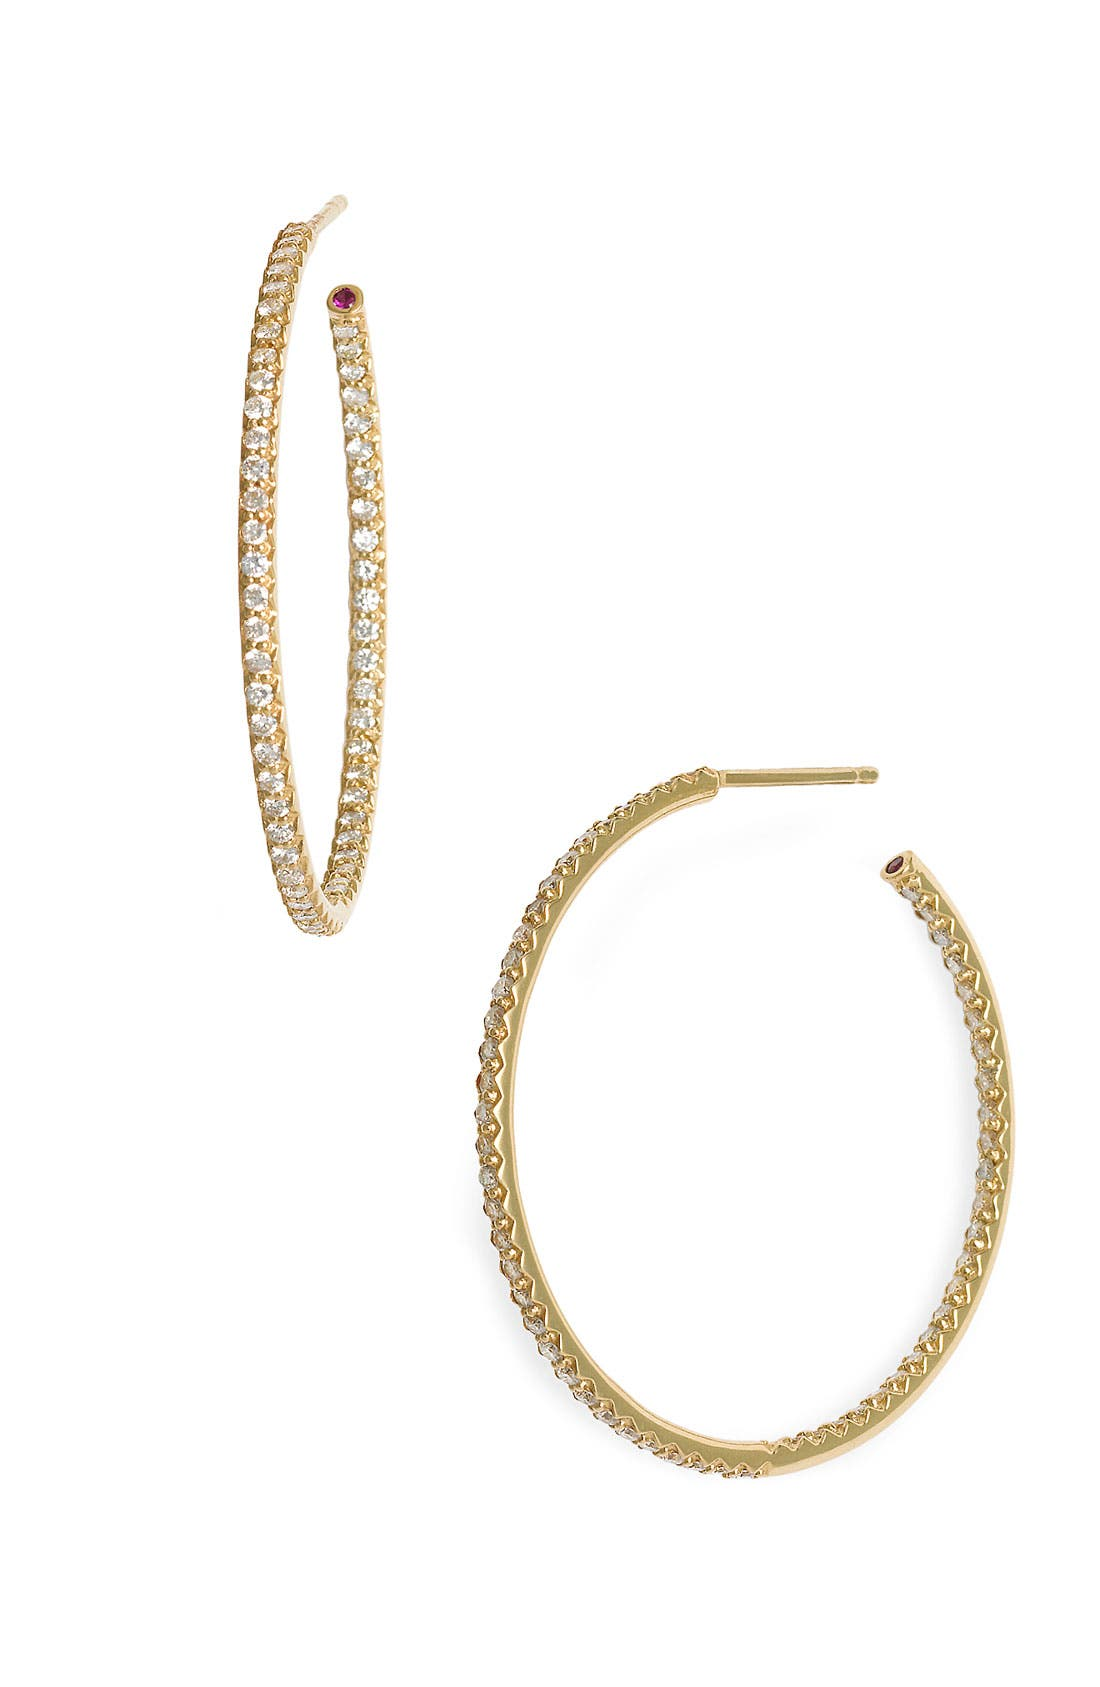 Alternate Image 1 Selected - Roberto Coin Inside Out Diamond Hoop Earrings